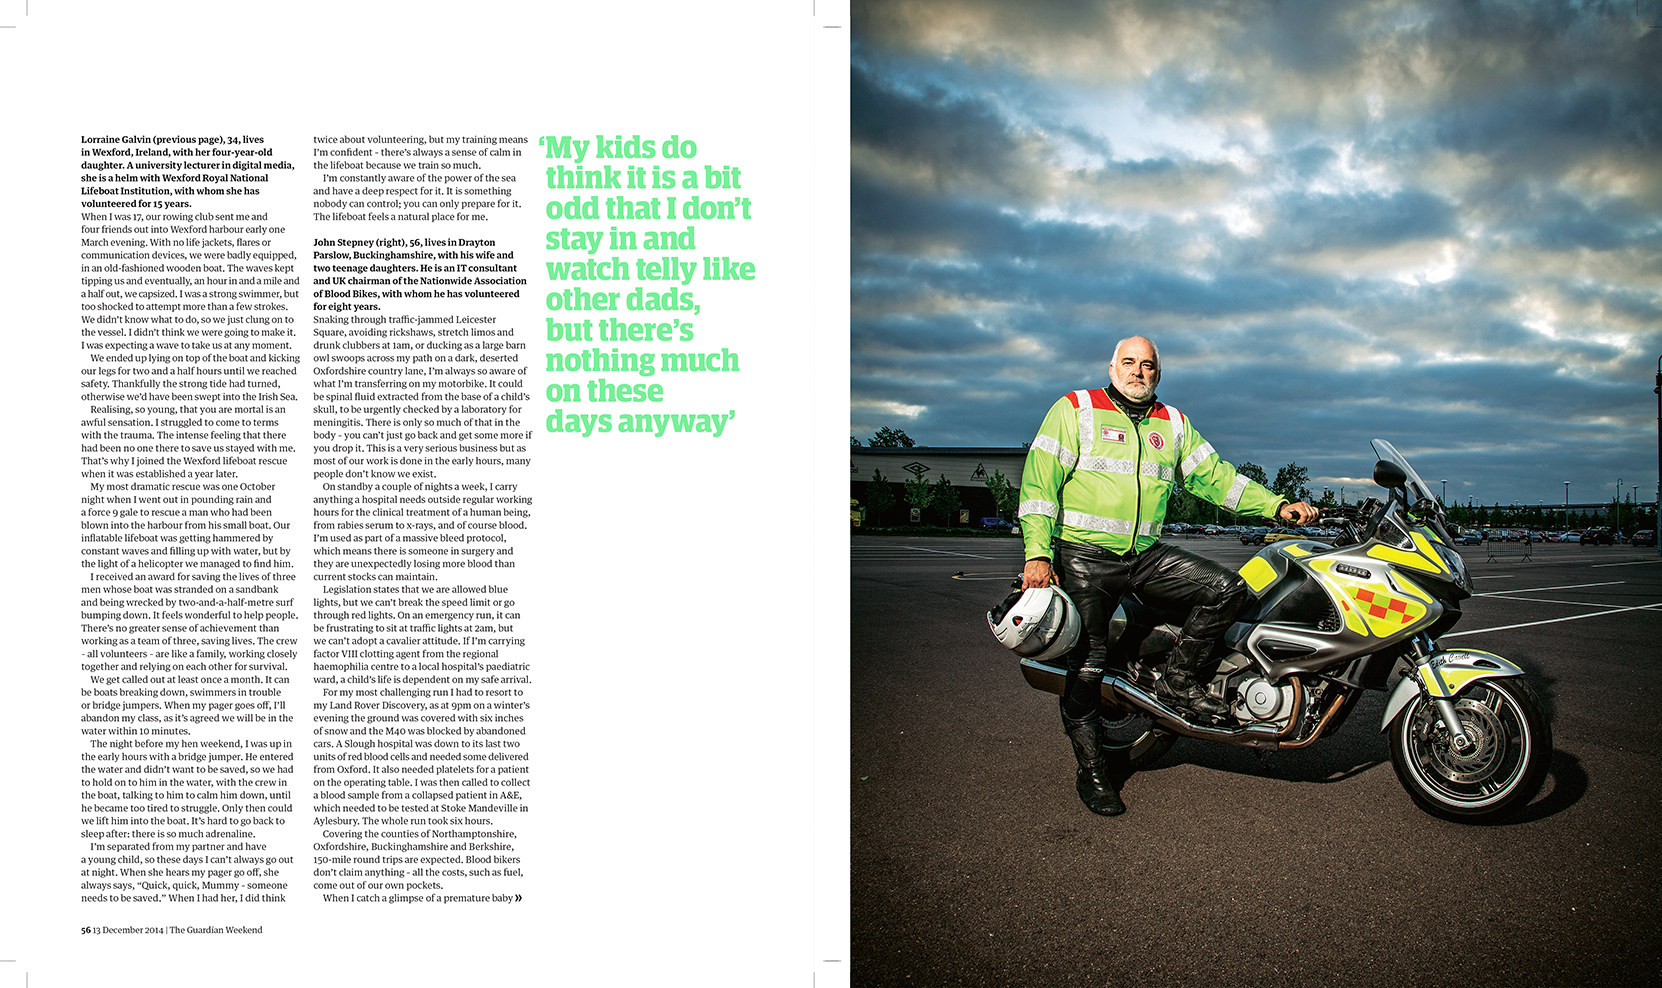 John Stepney - IT consultant and Blood Biker